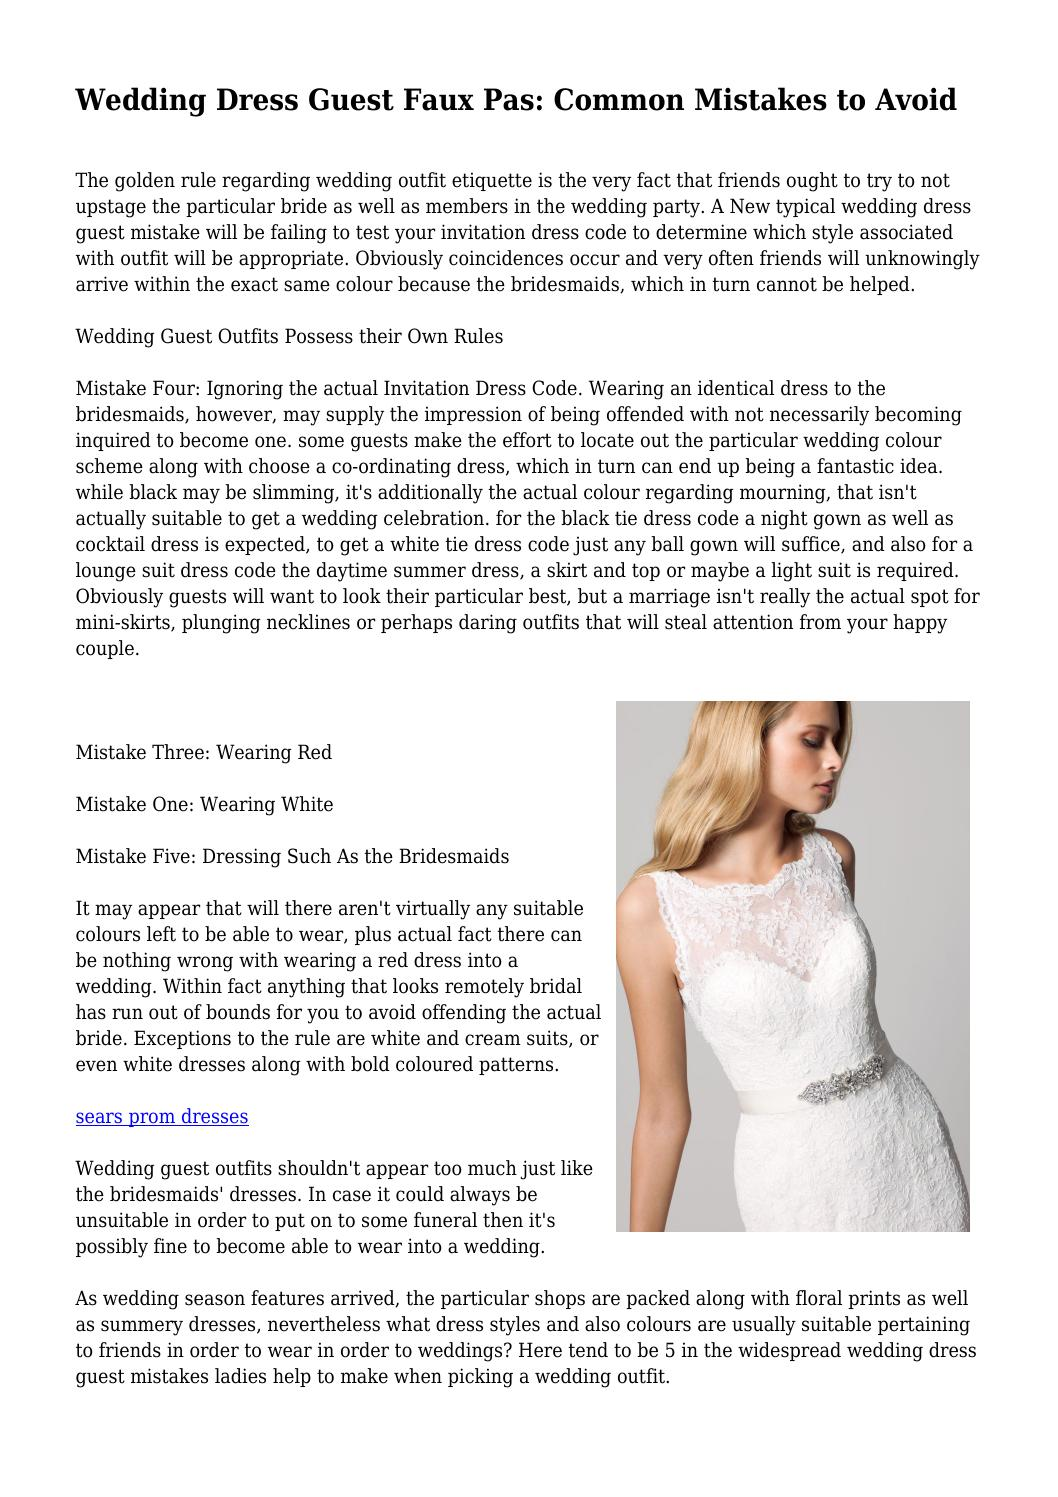 aa51dd97c9d Wedding Dress Guest Faux Pas  Common Mistakes to Avoid by fanaticalgrange51  - issuu